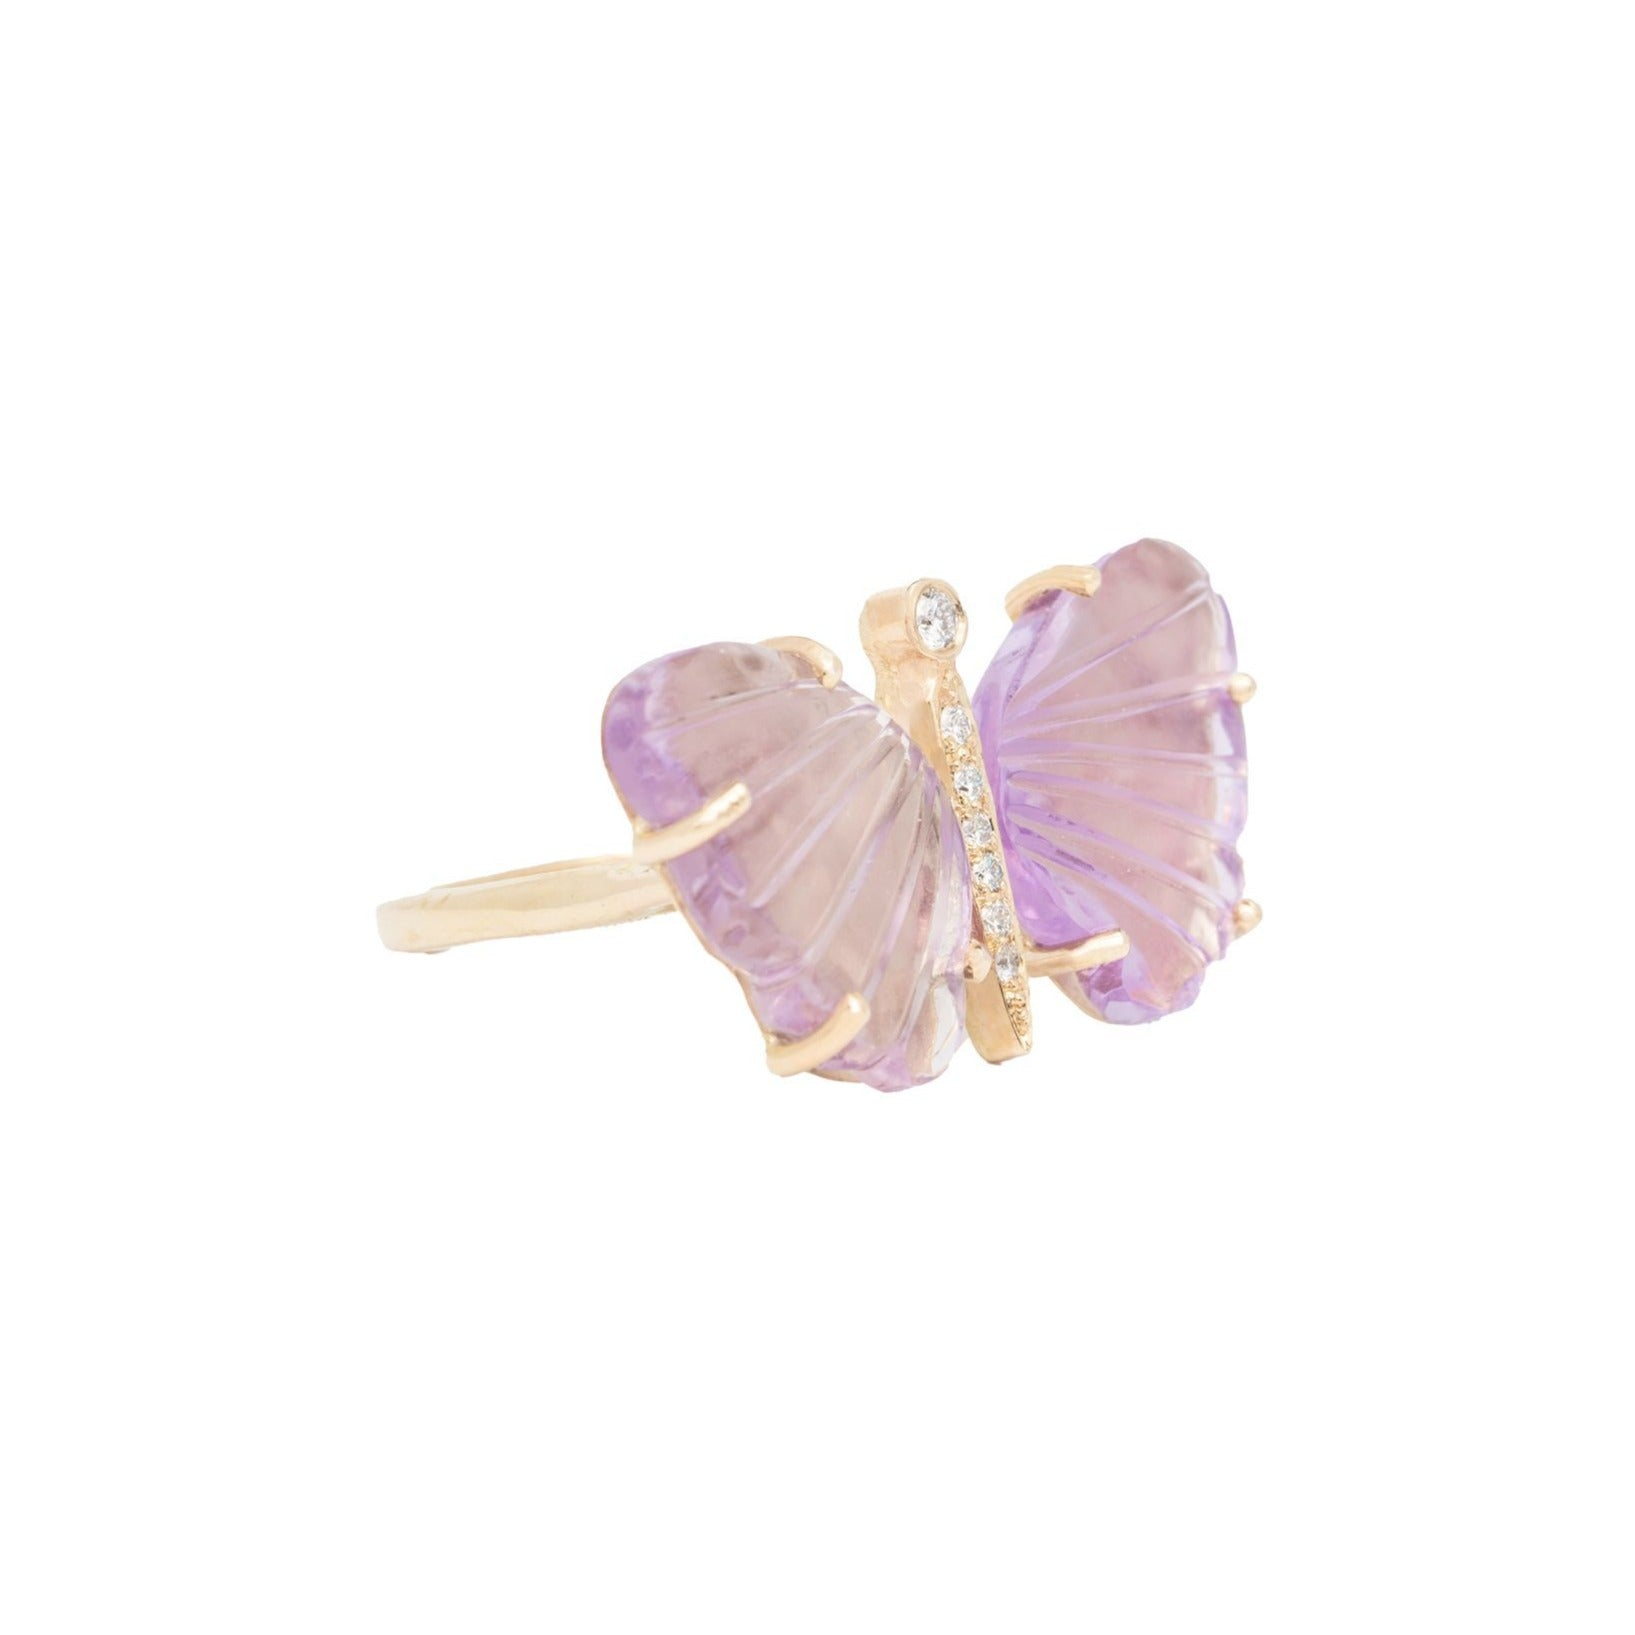 Medium Pink Amethyst Butterfly Ring